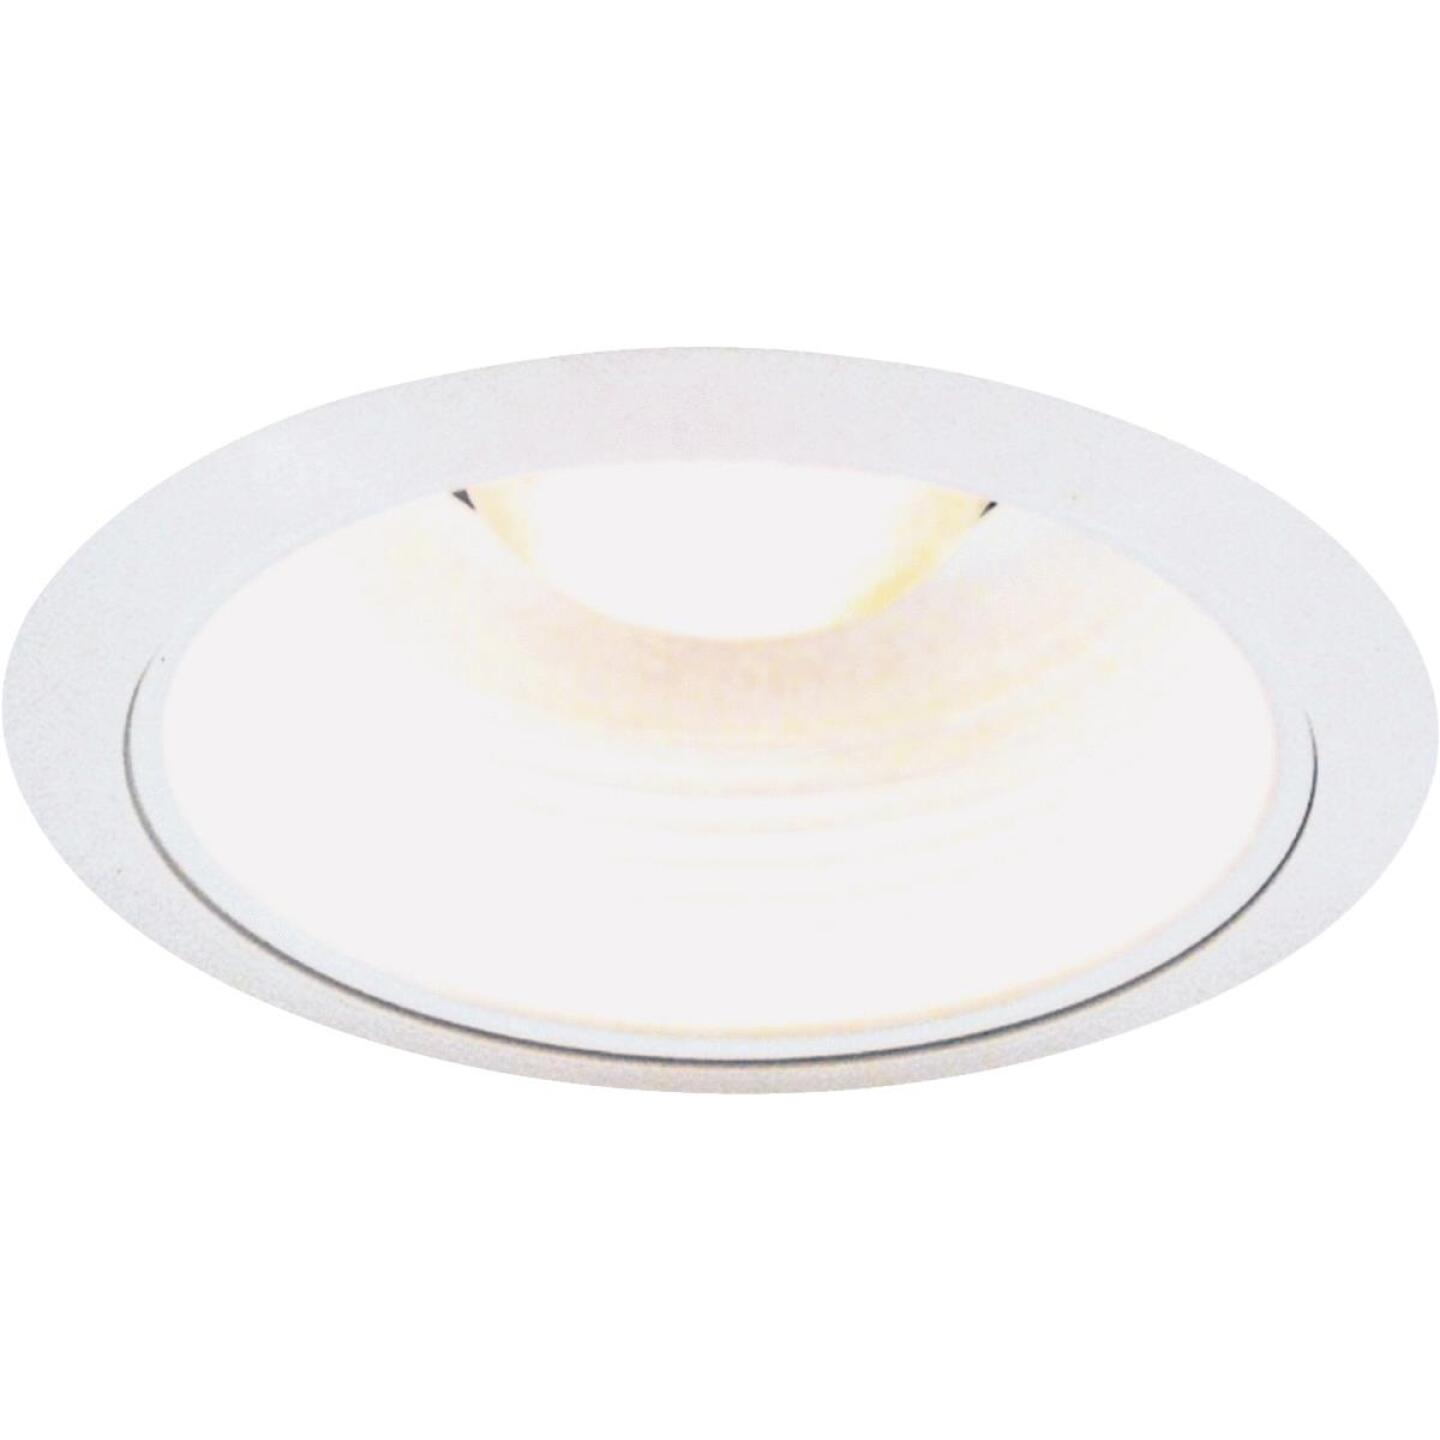 Thomas 5 In. White Baffle Recessed Fixture Trim Image 1